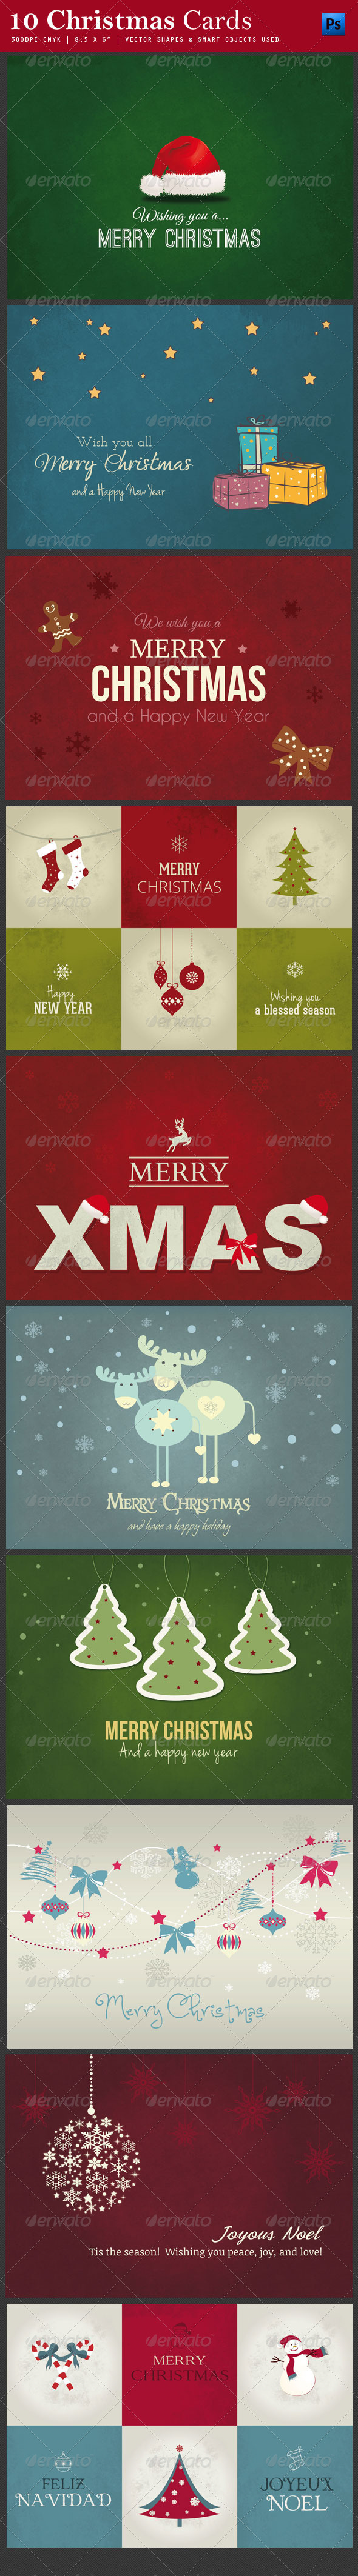 10 Christmas Cards PSD - Cards & Invites Print Templates